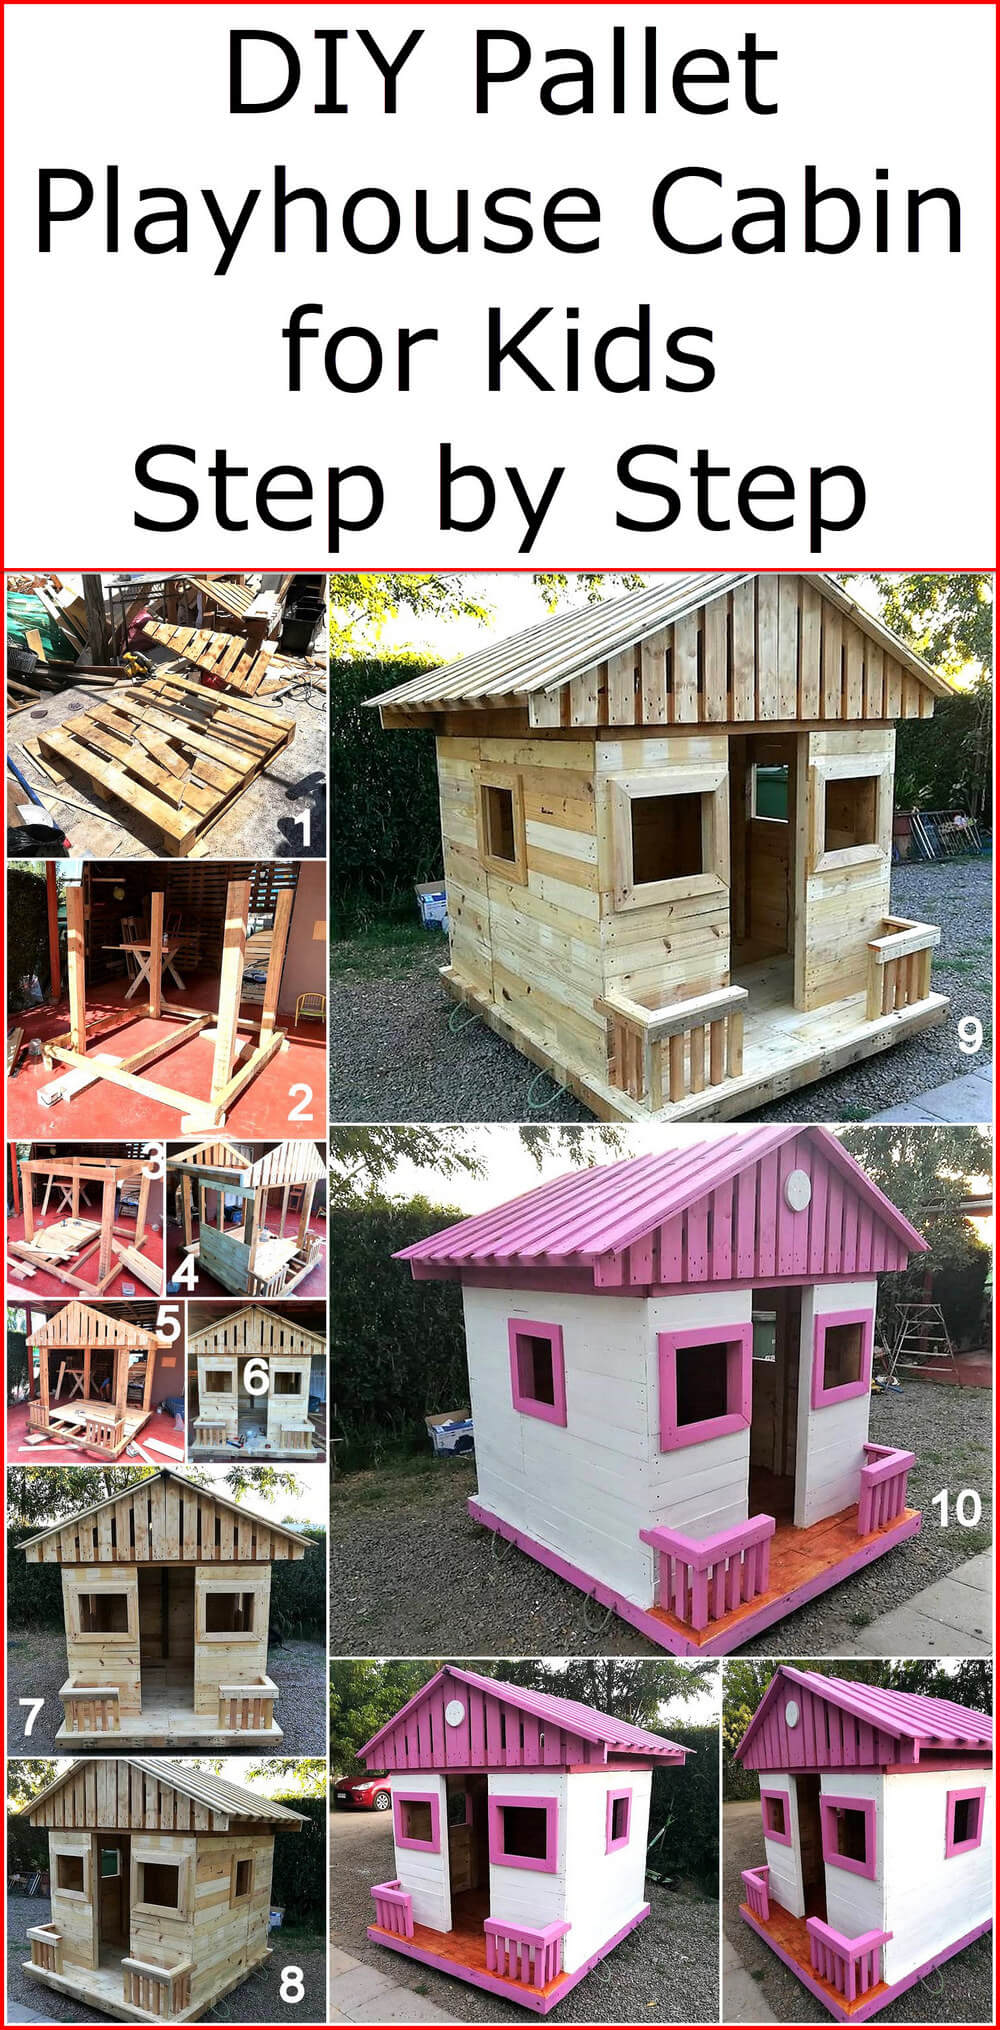 DIY Pallet Playhouse Cabin for Kids Step by Step